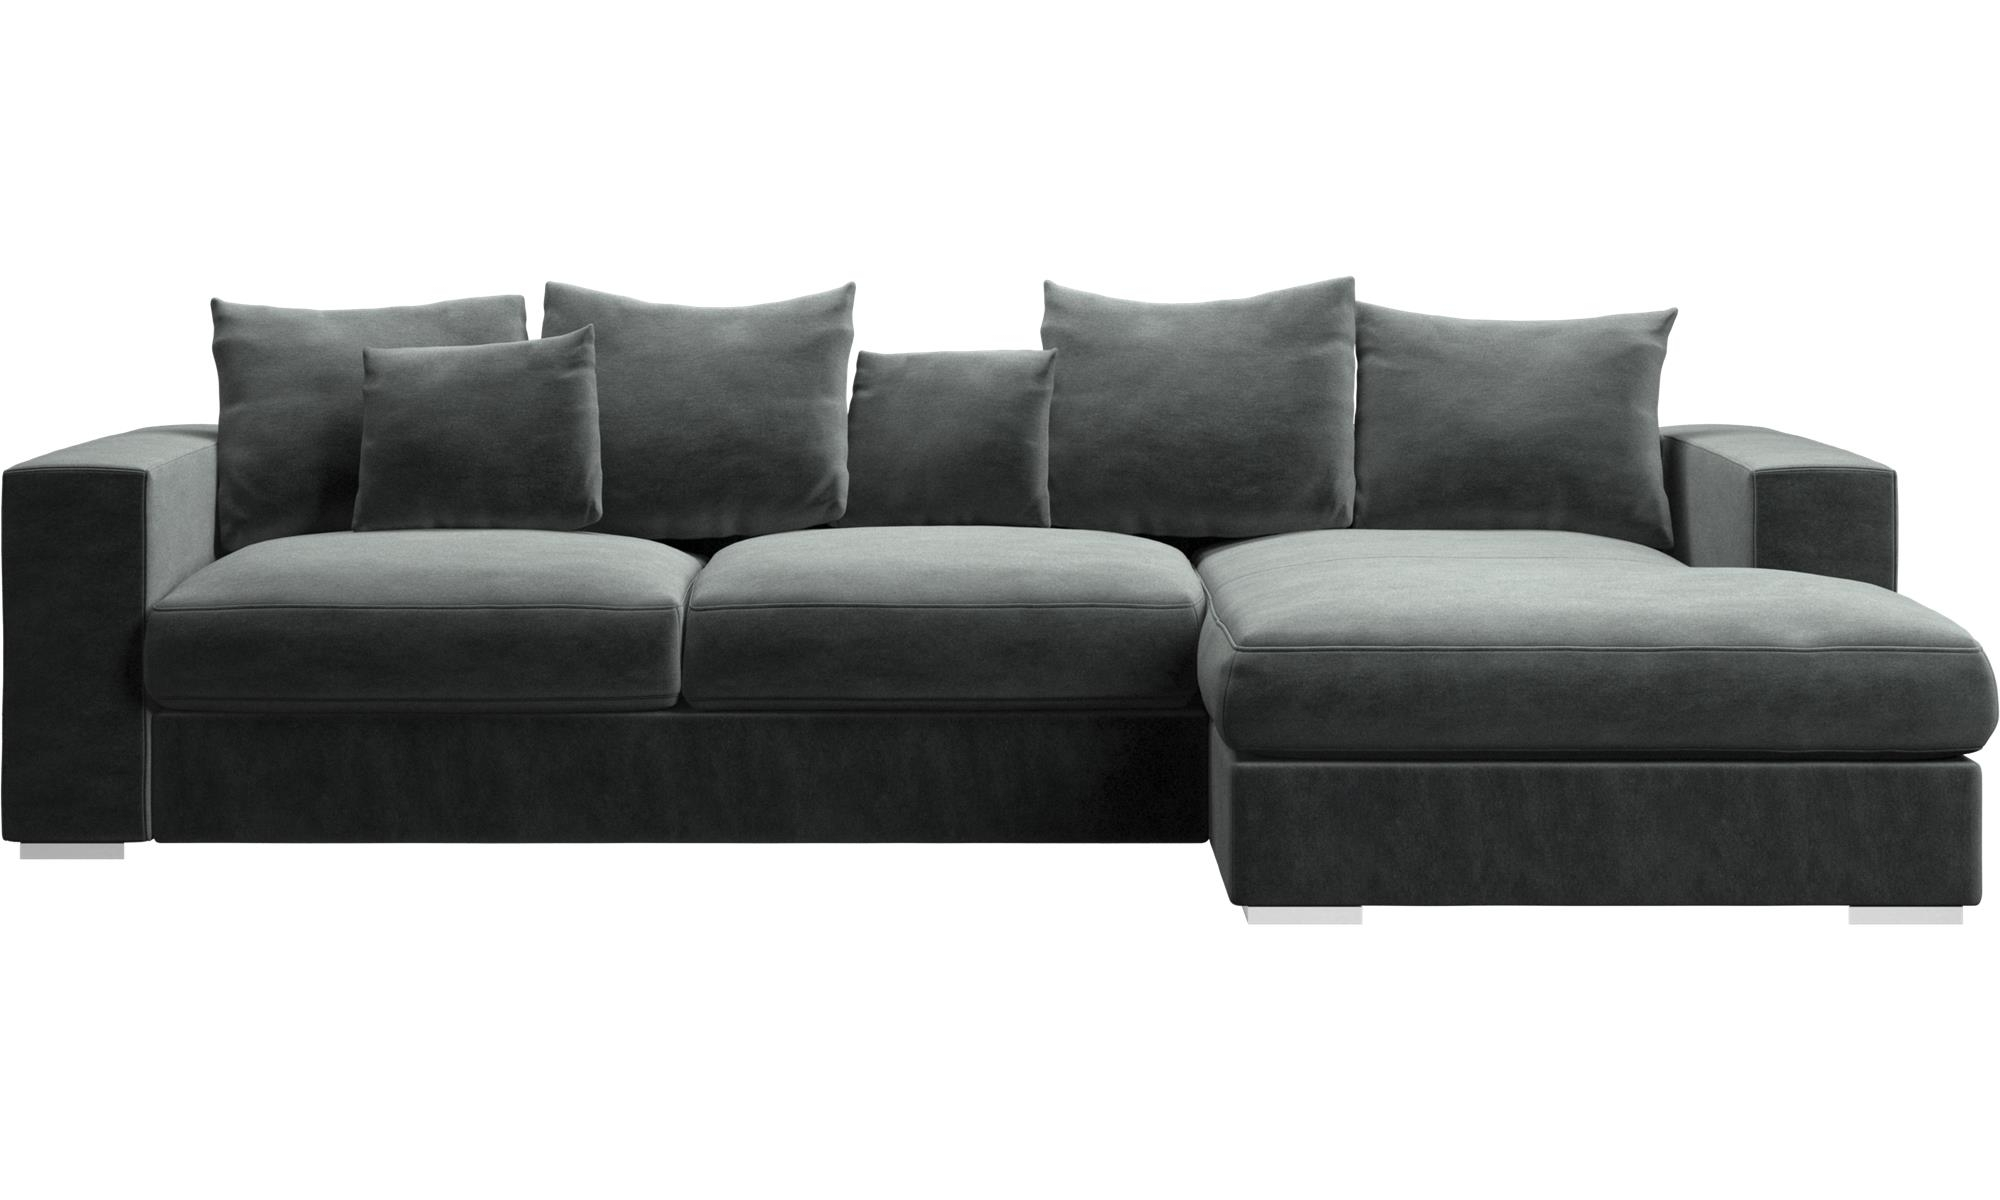 Fashionable Chaise Lounge Sofas – Cenova Sofa With Resting Unit – Boconcept Throughout Chaise Lounge Benchs (View 6 of 15)